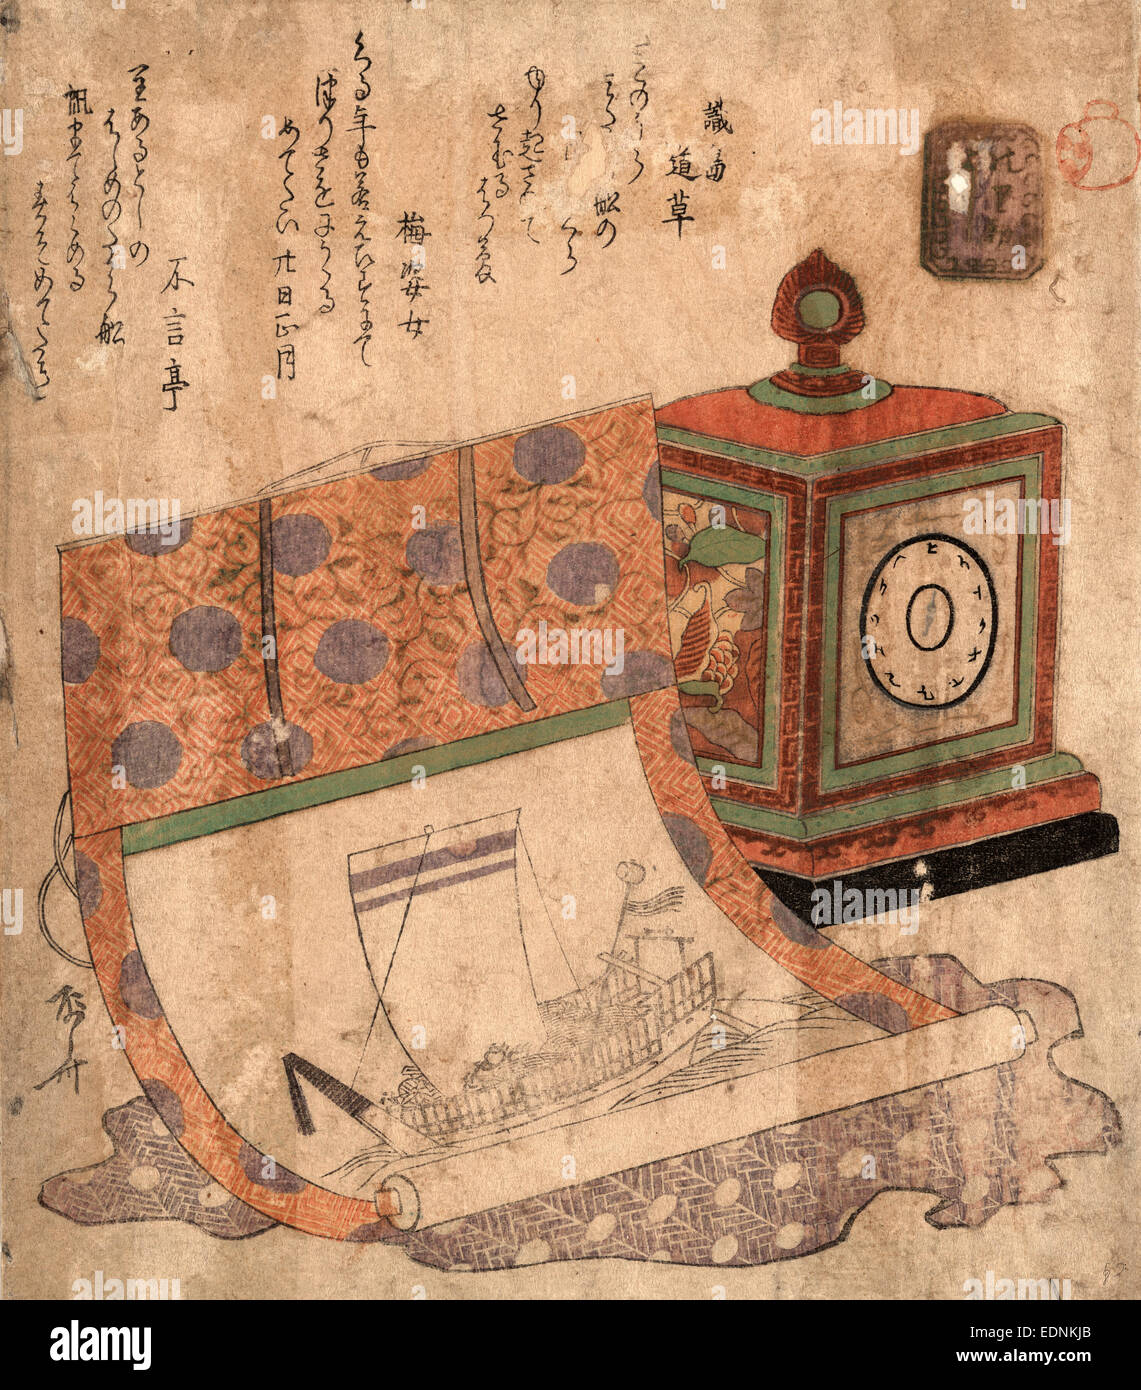 Tokei to takarabune no kakejiku, Painting of a ship of treasures and a western clock., Ryuryukyo, Shinsai, approximately - Stock Image